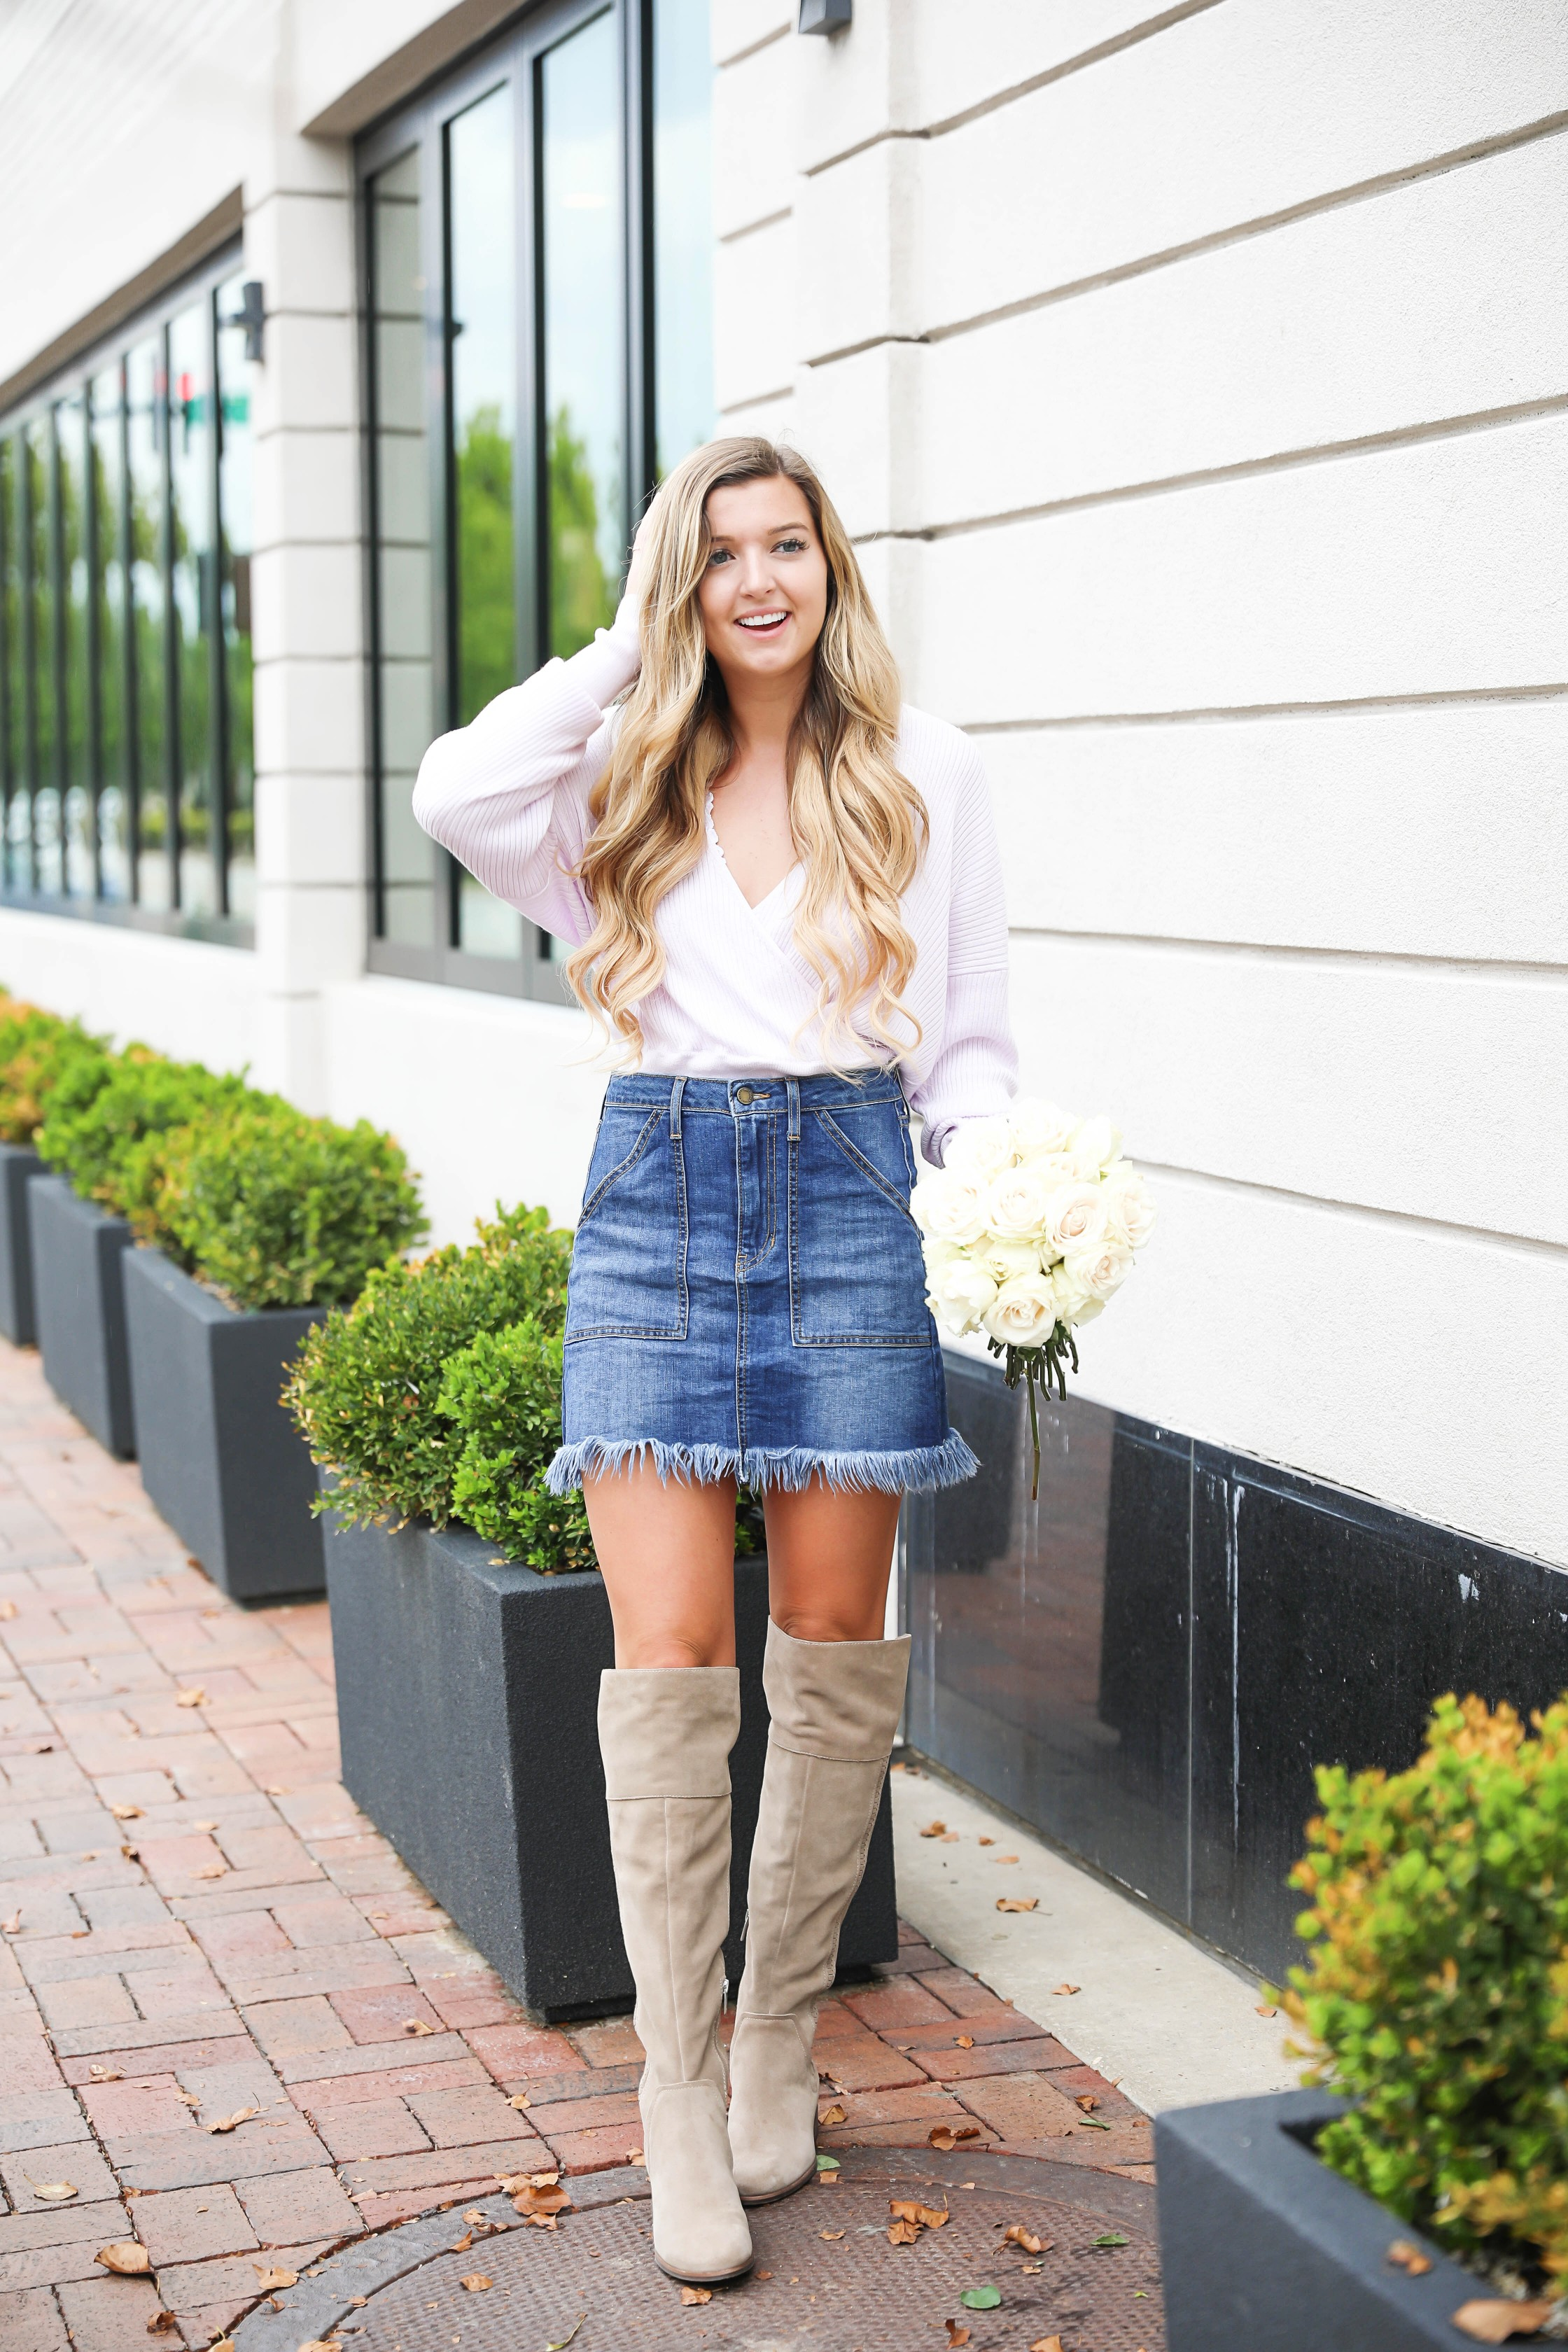 Lavender deep-v sweater from the Nordstrom Anniversary Sale! Paired with a cute white lace bralette and frayed denim skirt! I finished the look with my new over the knee suede boots! All from the nordstrom anniversary sale 2018! Details on fashion blog daily dose of charm by Lauren Lindmark